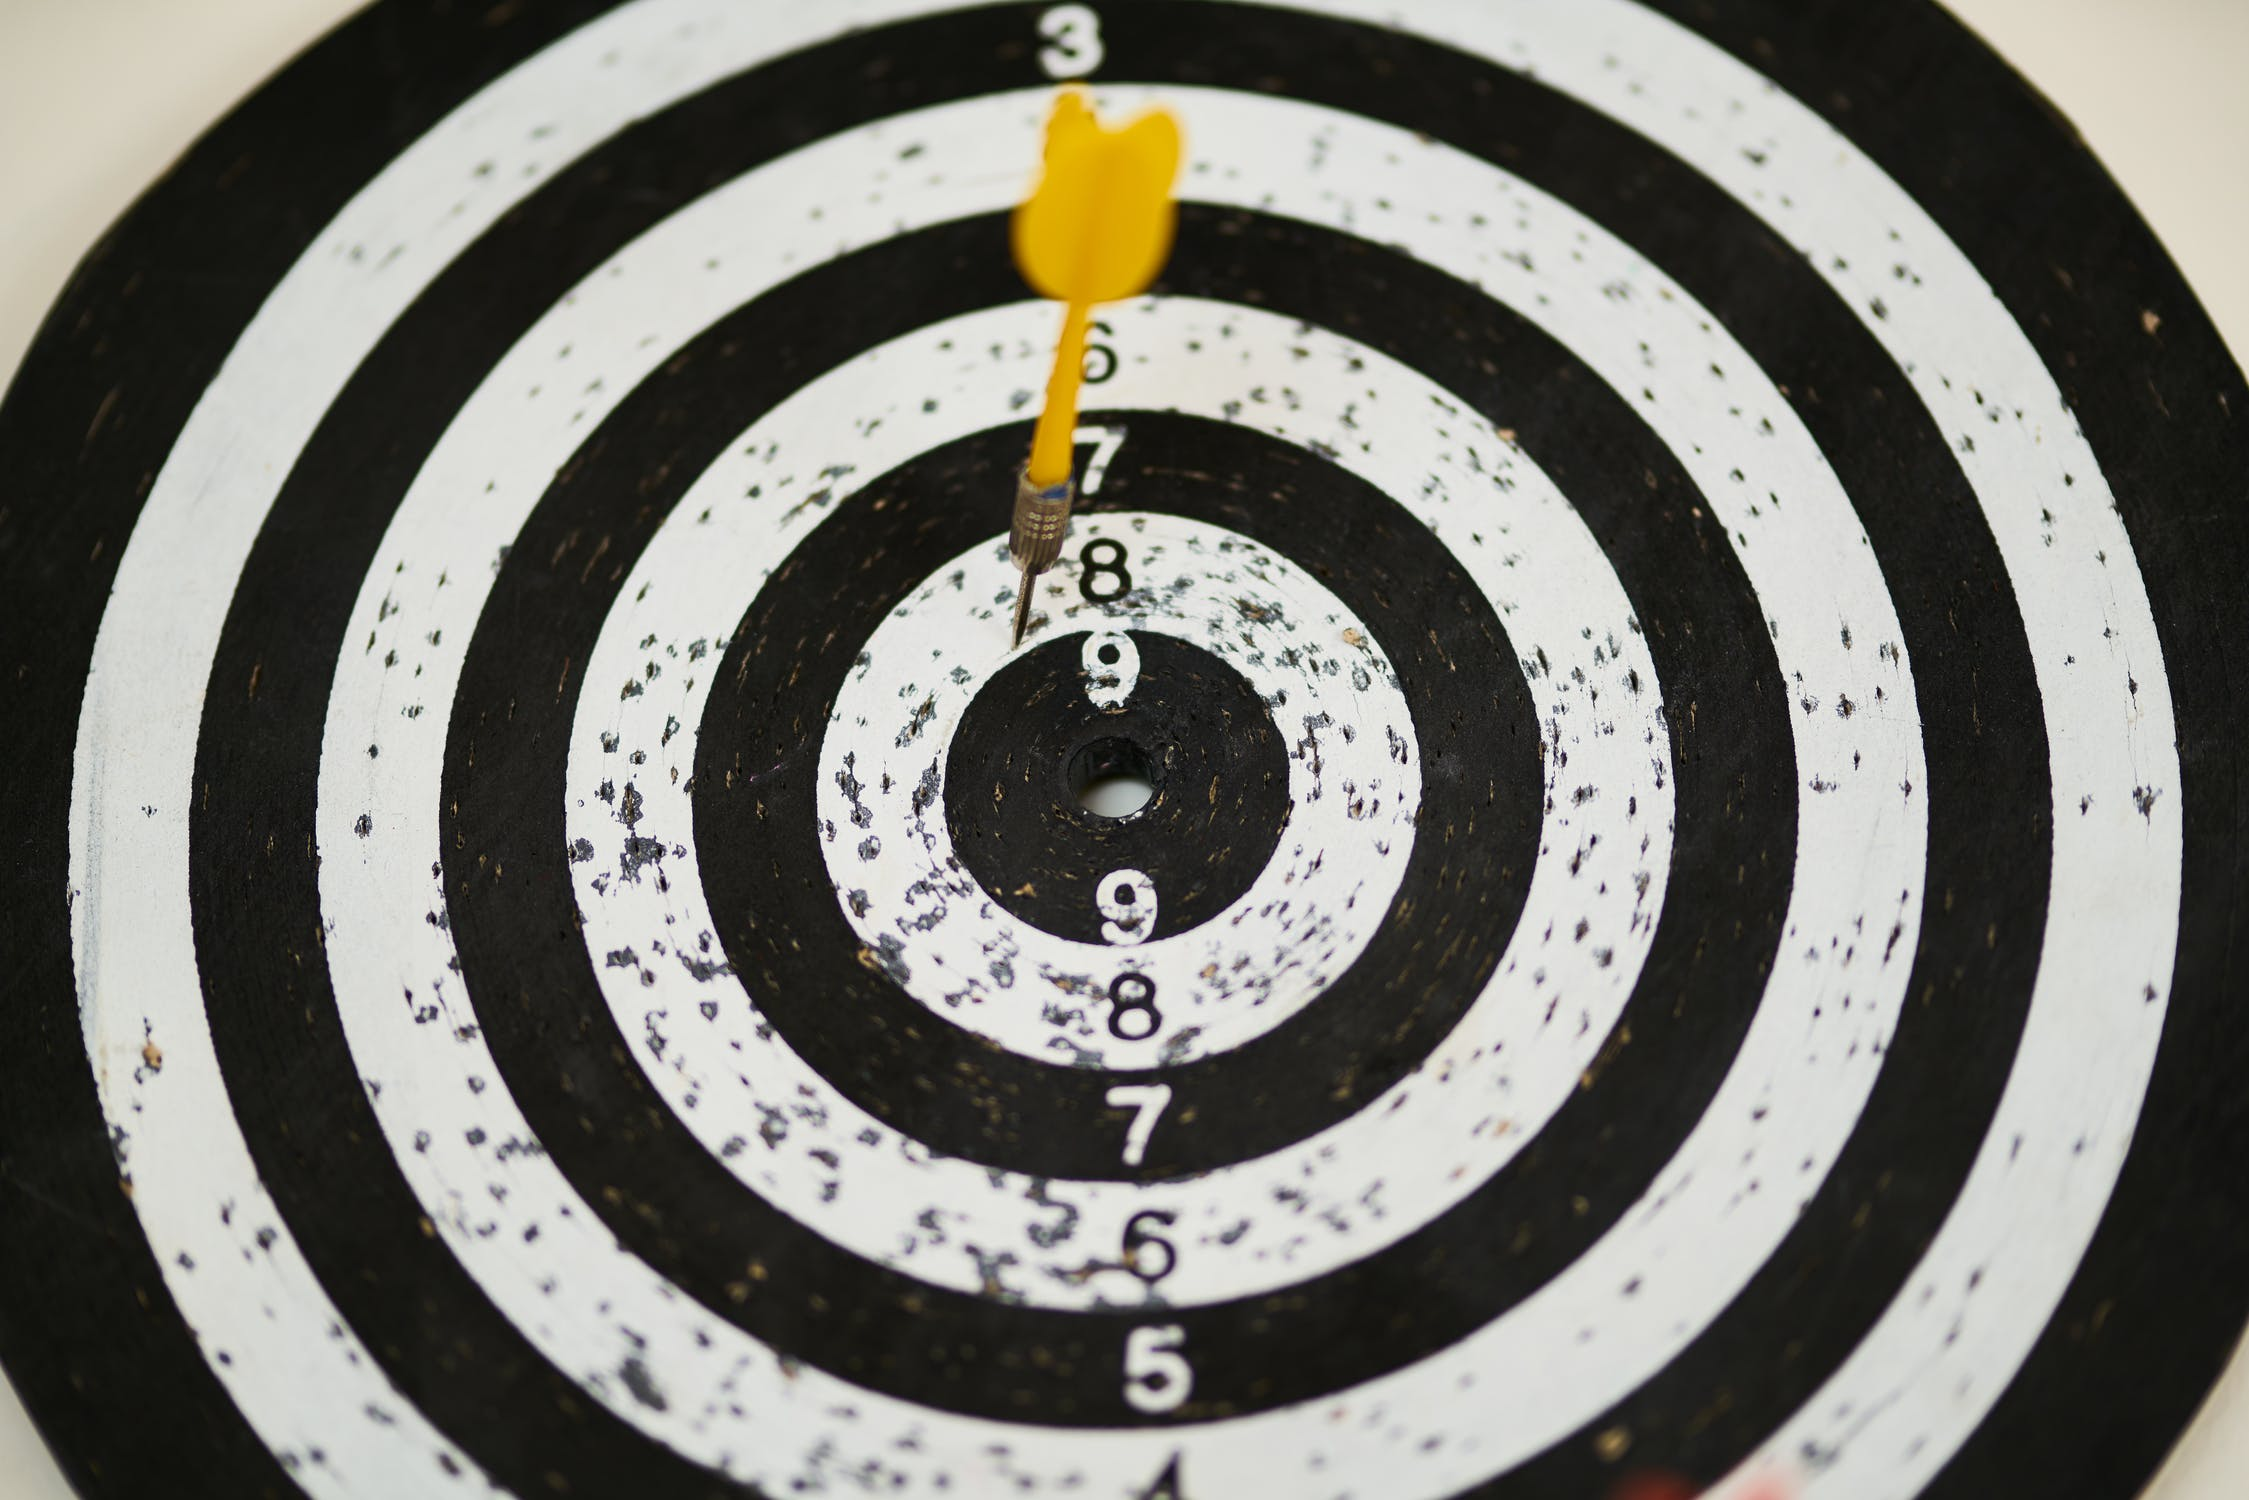 Photo showing dartboard - analogy for quality scores